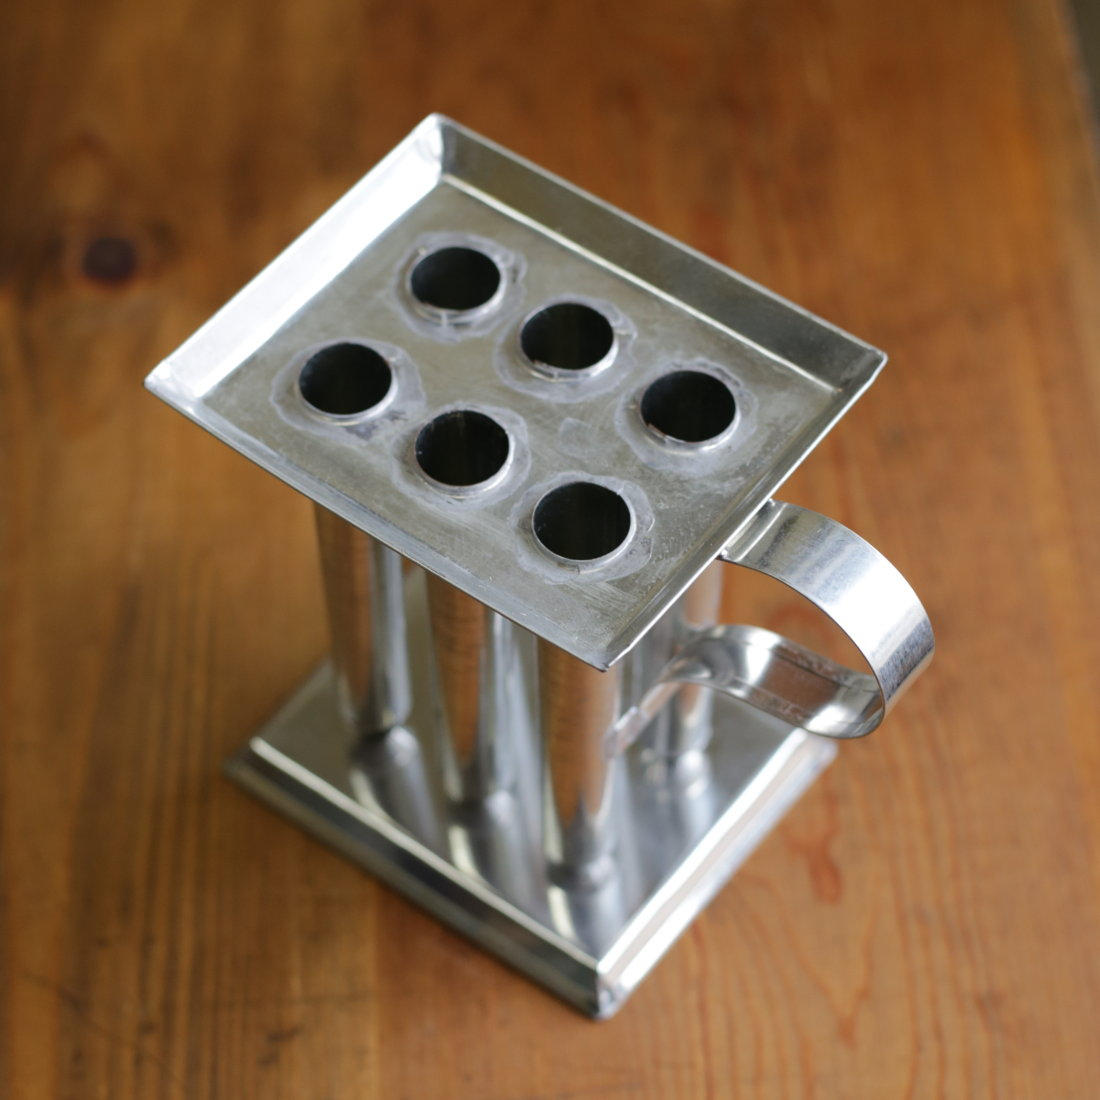 6 Short Candle Mold CM-22b - Townsends